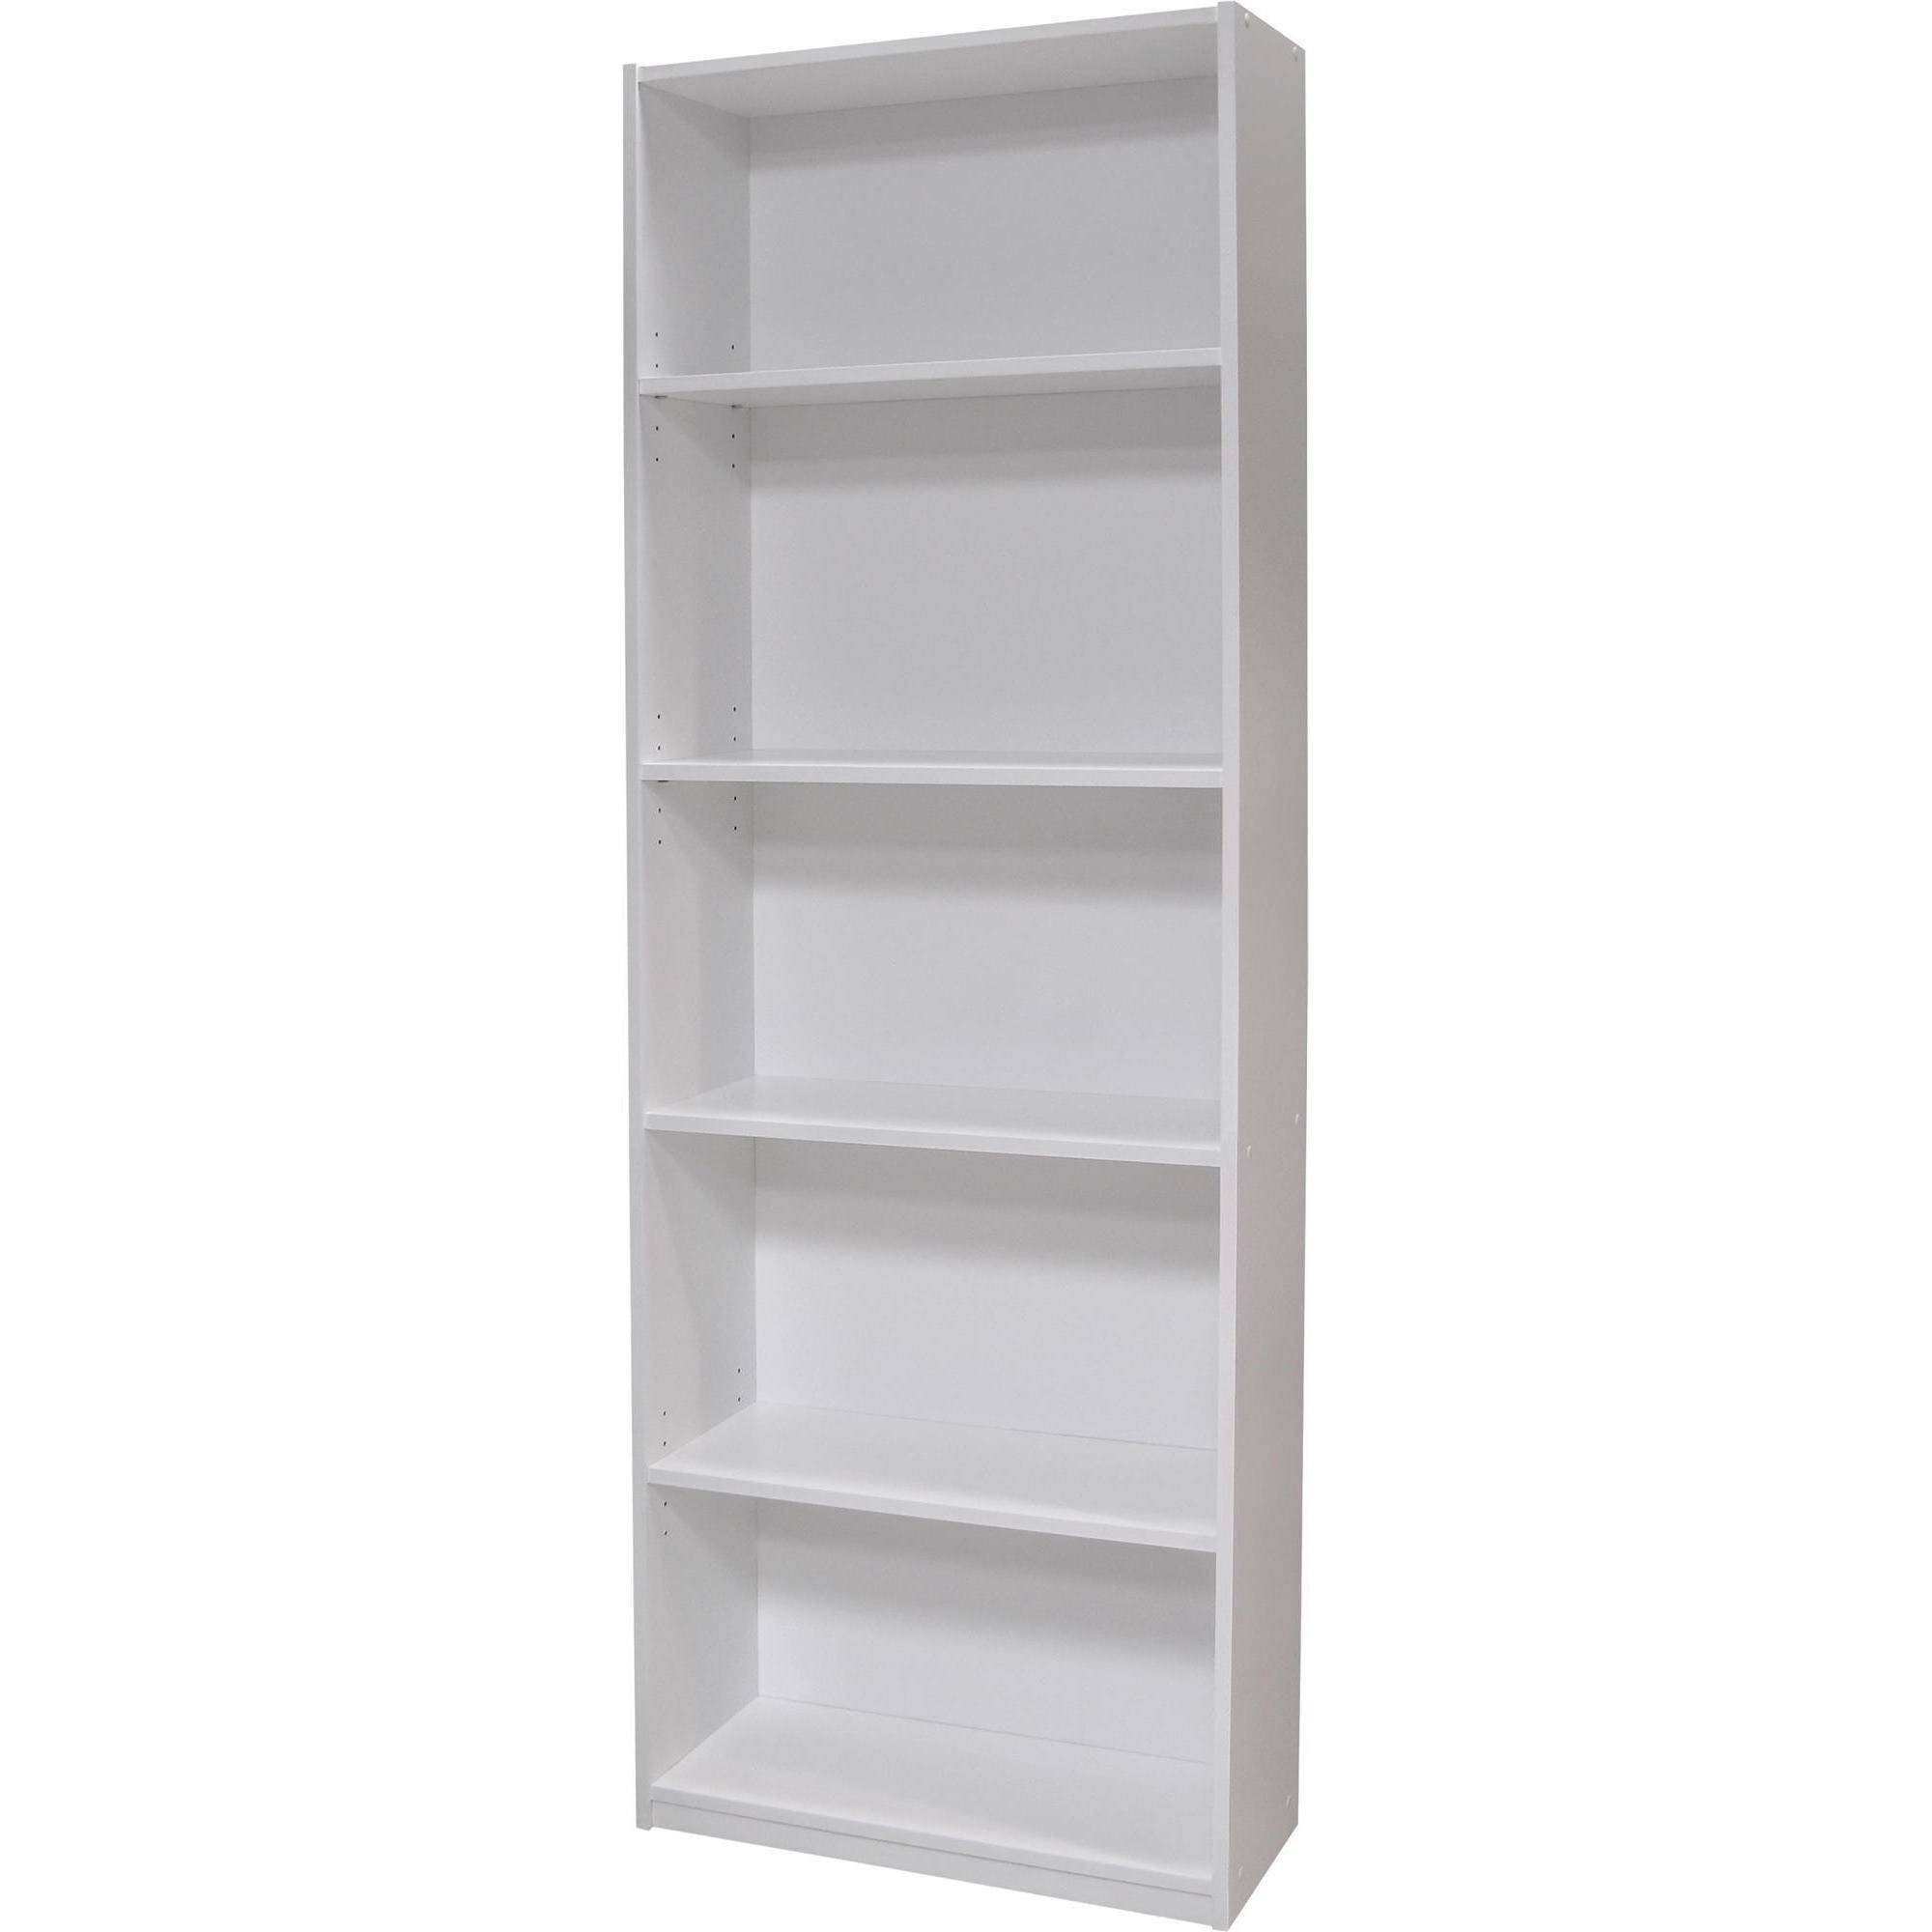 Ameriwood 5 Shelf Bookcases, Set Of 2 (Mix And Match) – Walmart Intended For Newest Black Bookcases Walmart (View 3 of 15)